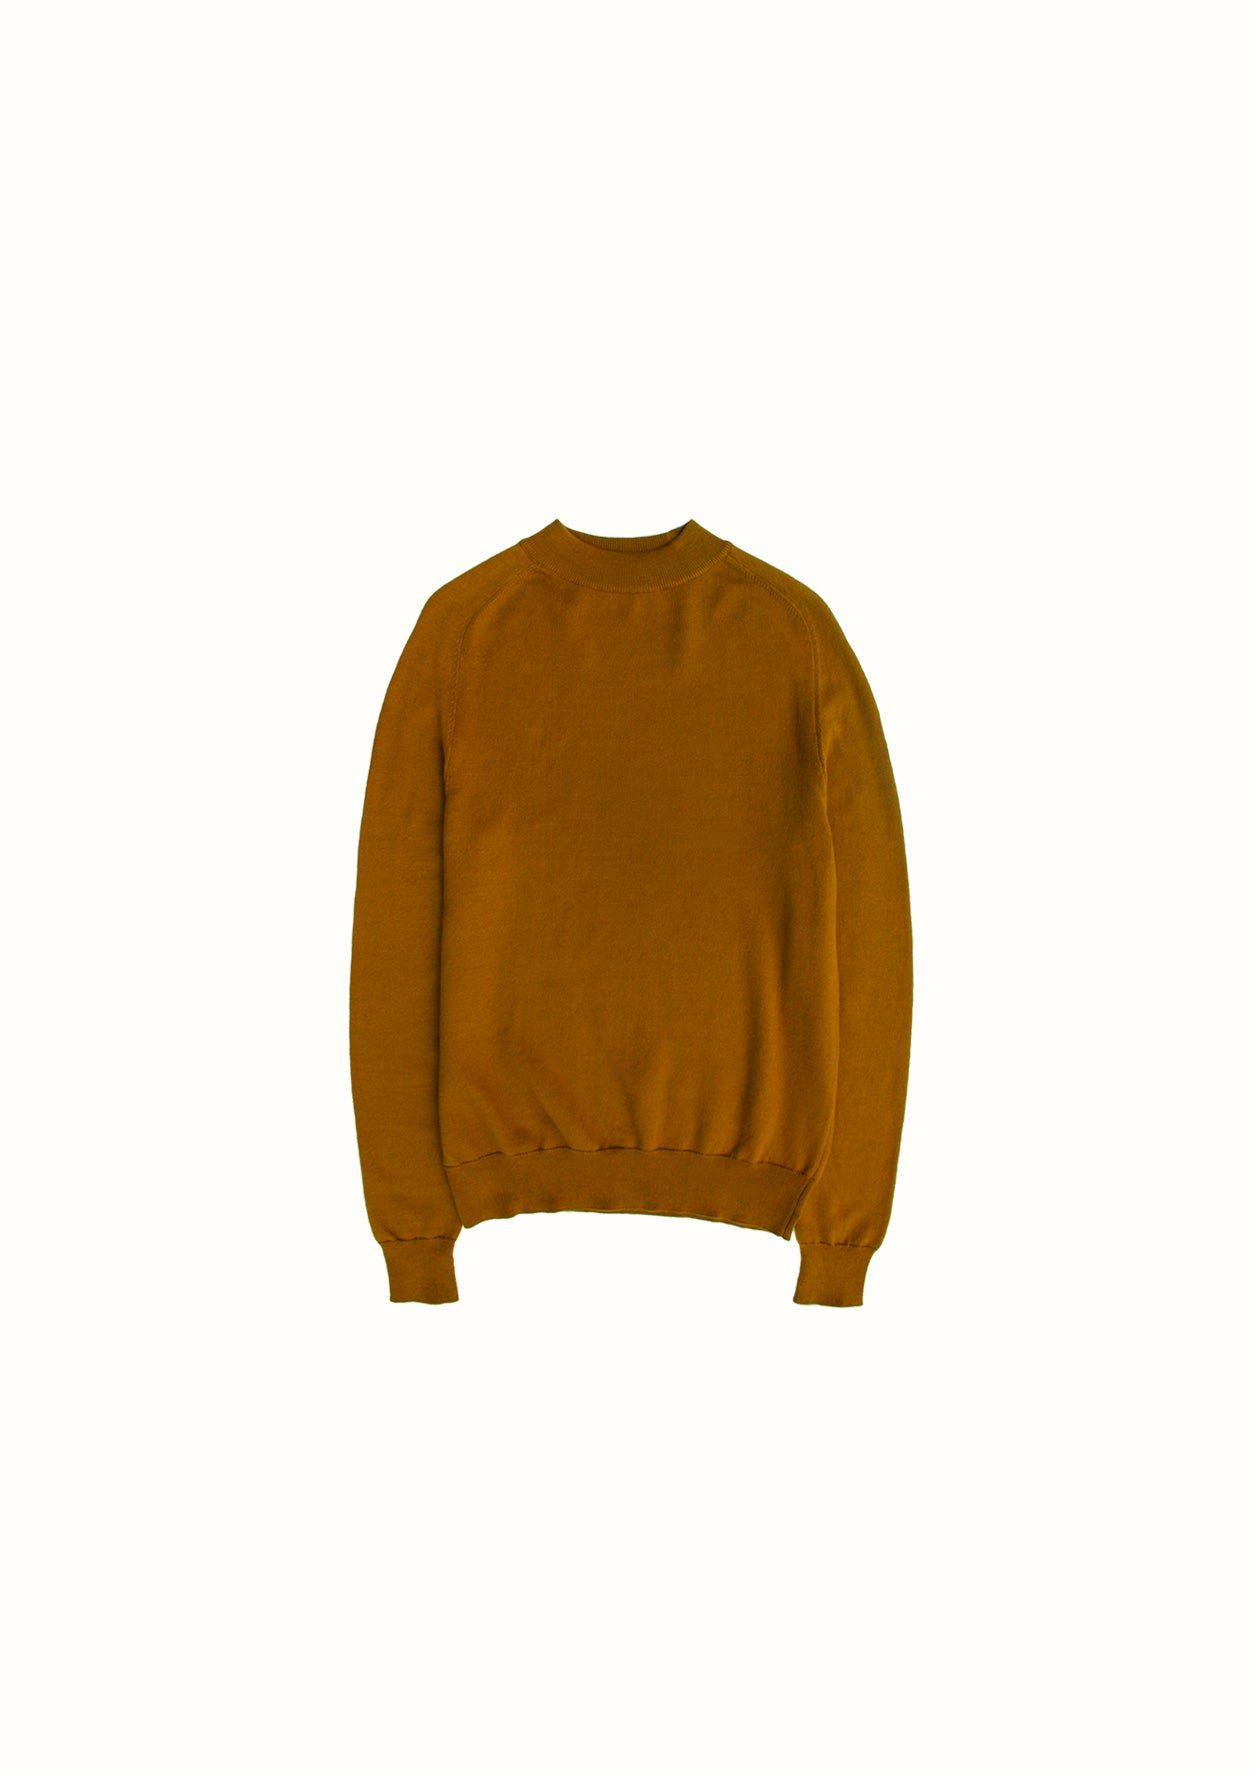 Mock neck knit - Organic cotton - Cinnamon - De Bonne Facture